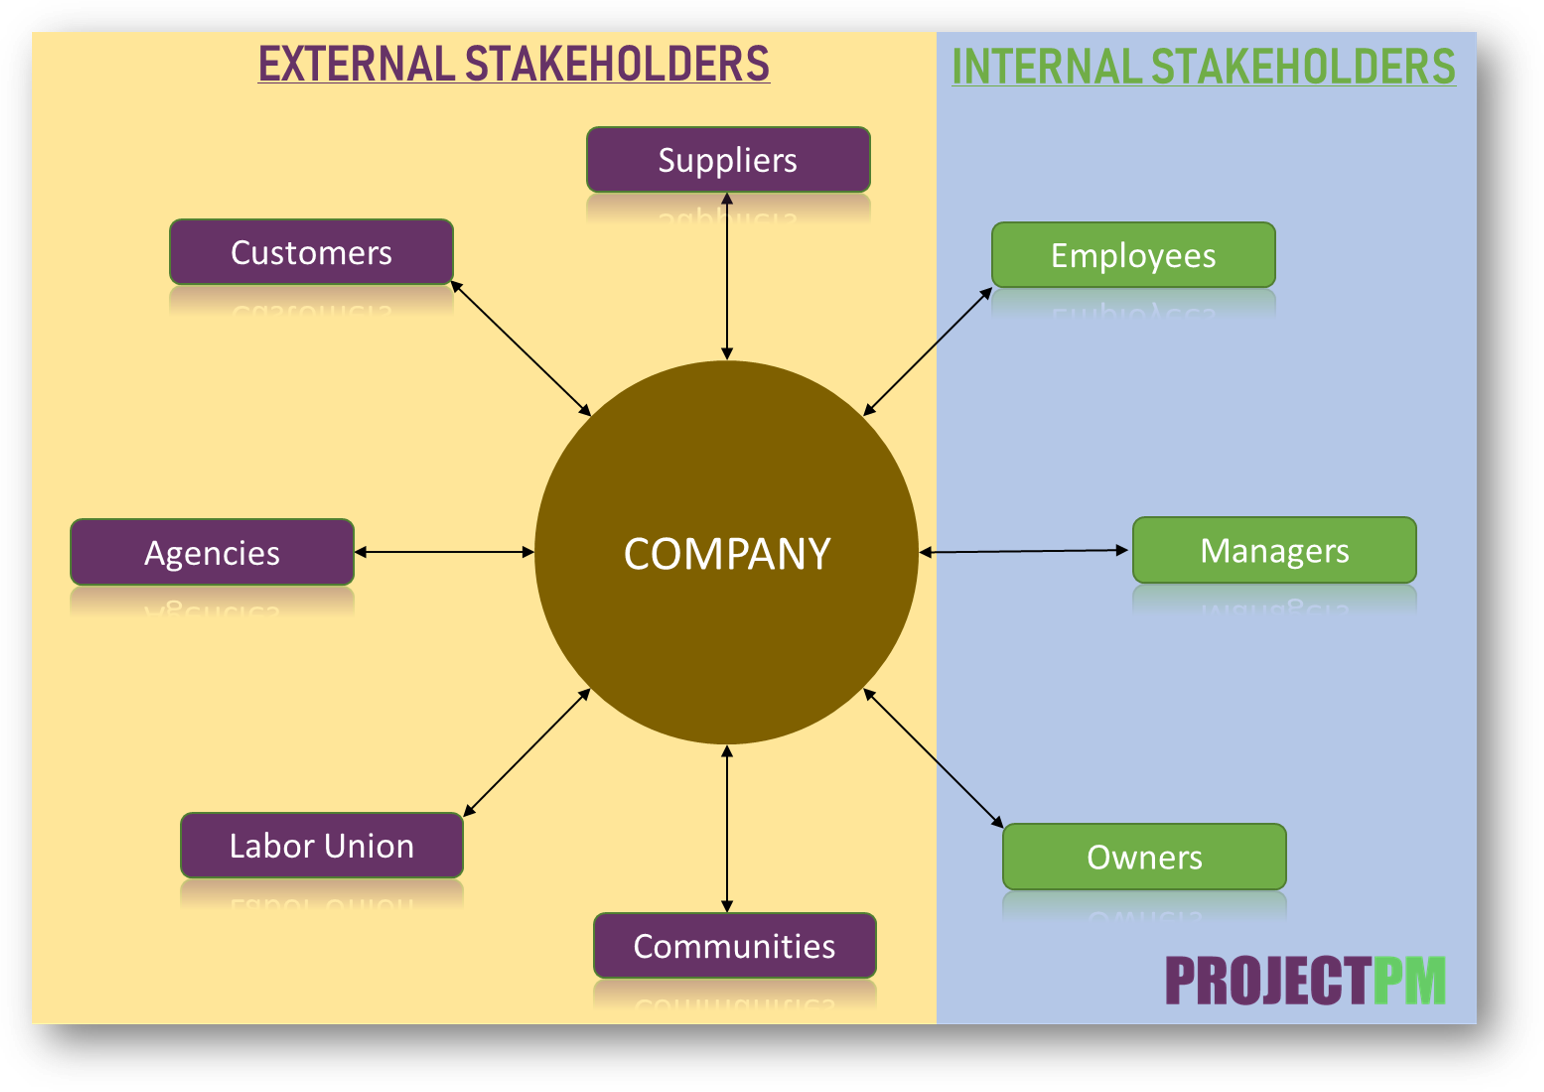 internal AND external STAKEHOLDERS